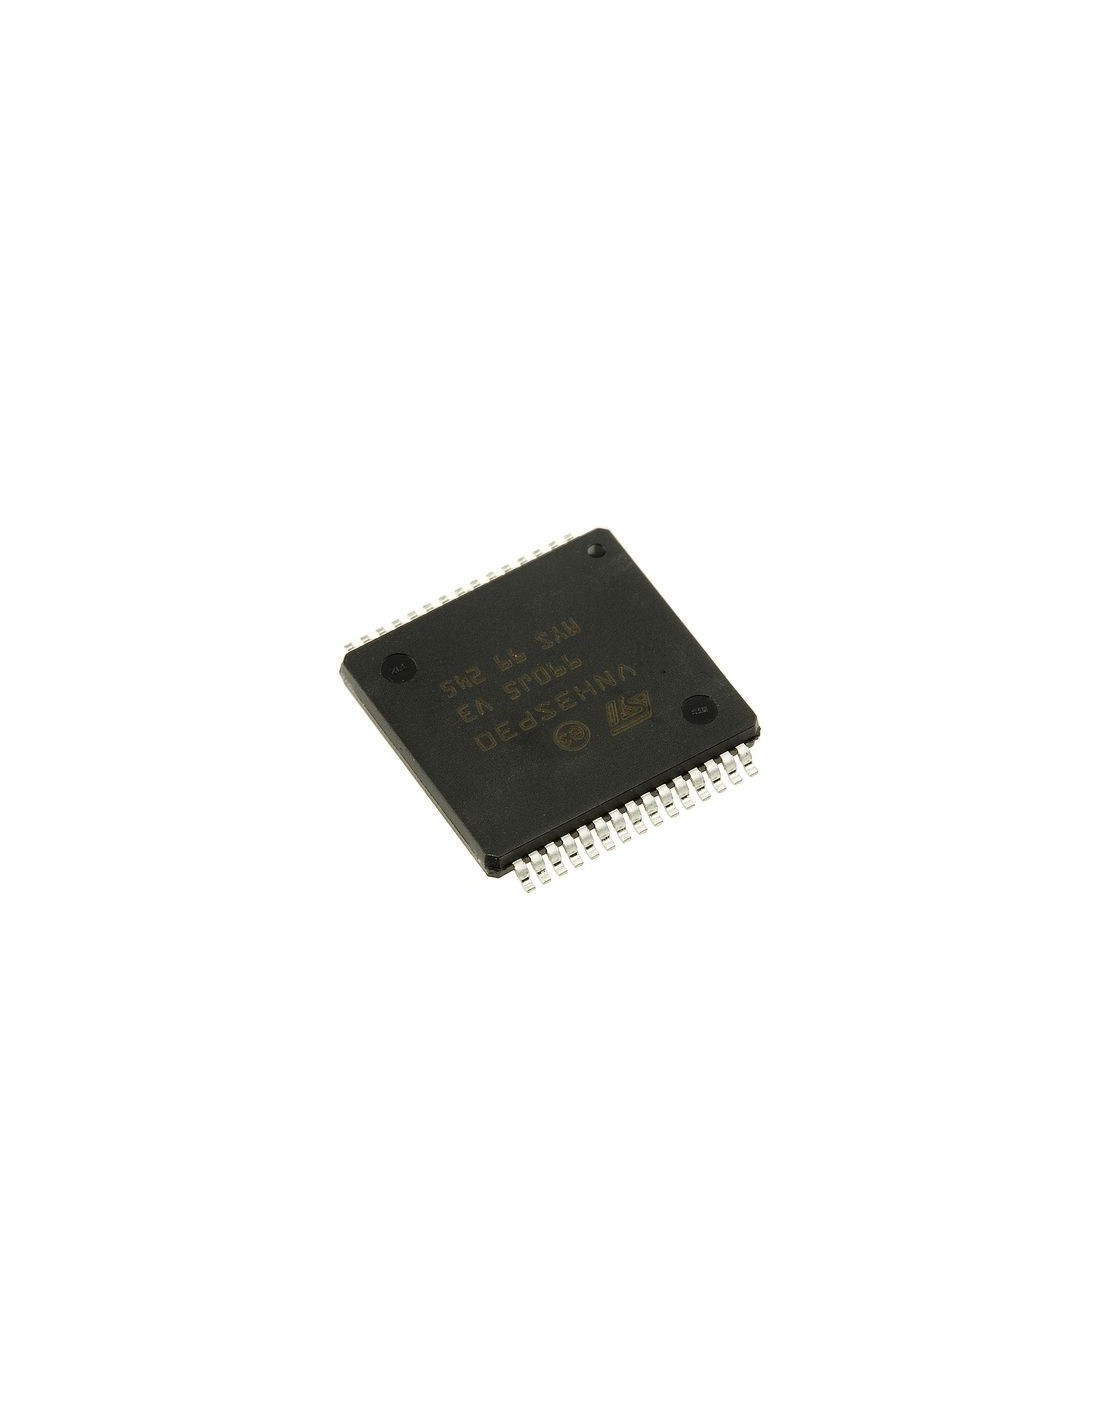 Integrated Circuit For Motor Control 30a Soic 30 Cms Vnh3sp30 E Images Of Tap To Zoom